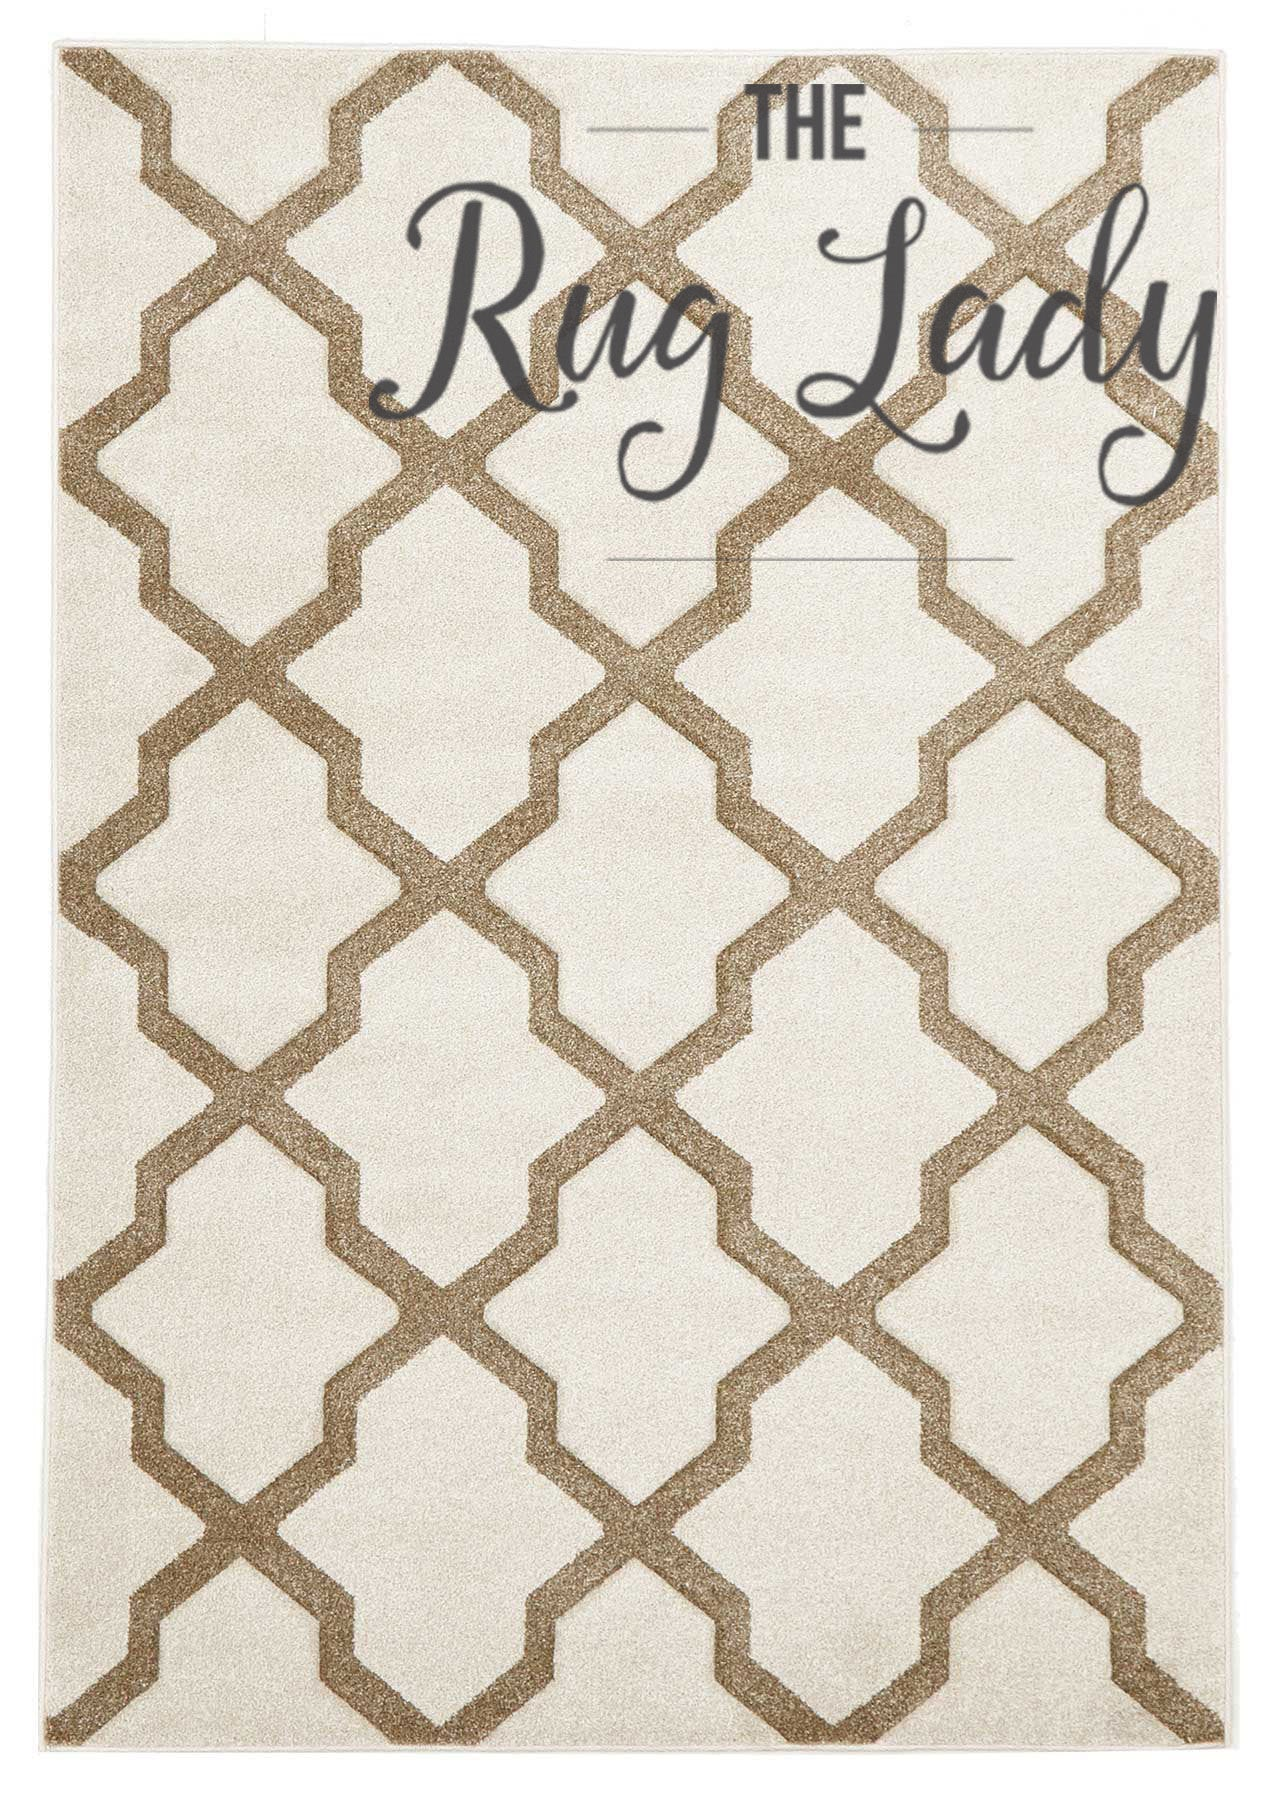 flat mat pattern hand rug large silver trellis kong arabesque floor itm hong acrylic tufted